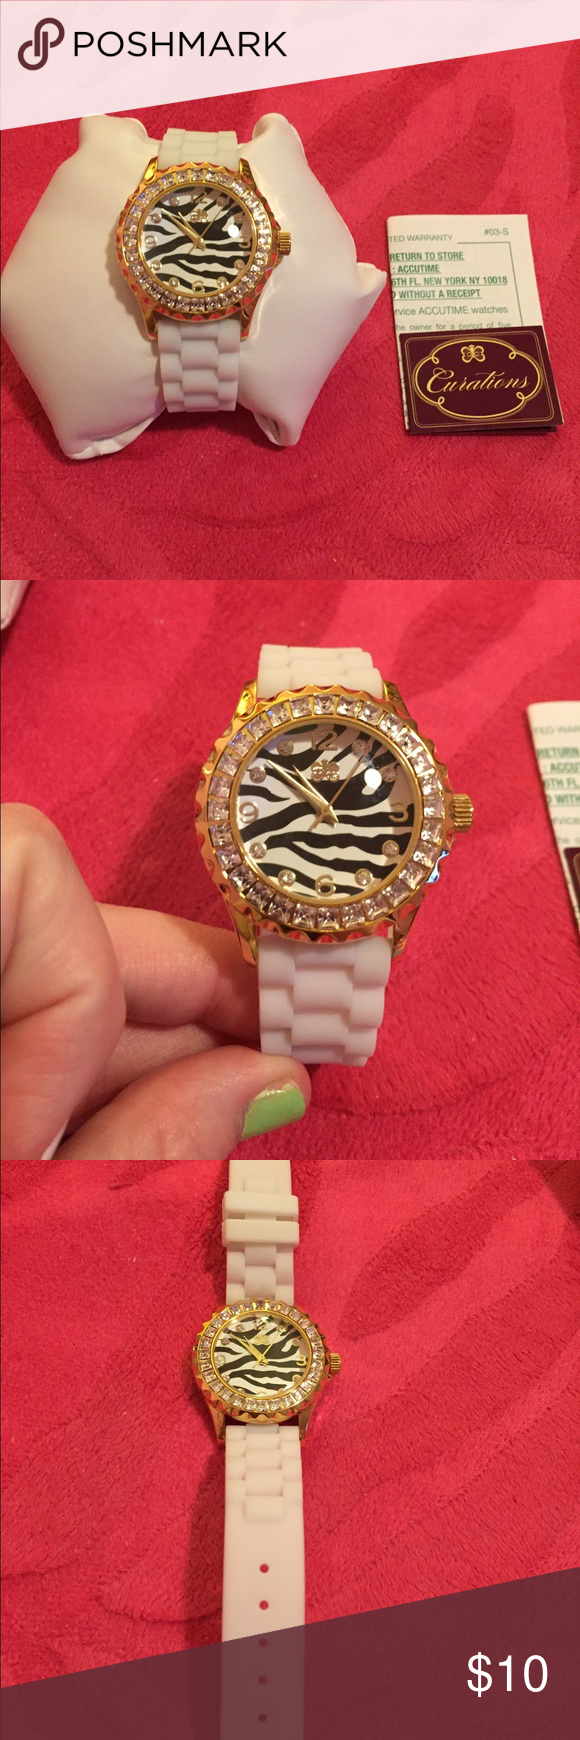 Curations Zebra Print Watch w/ White Strap Bought from HSN; great condition! Gently used! Gold and zebra print detailed watch face, white rubberized strap Curations Jewelry